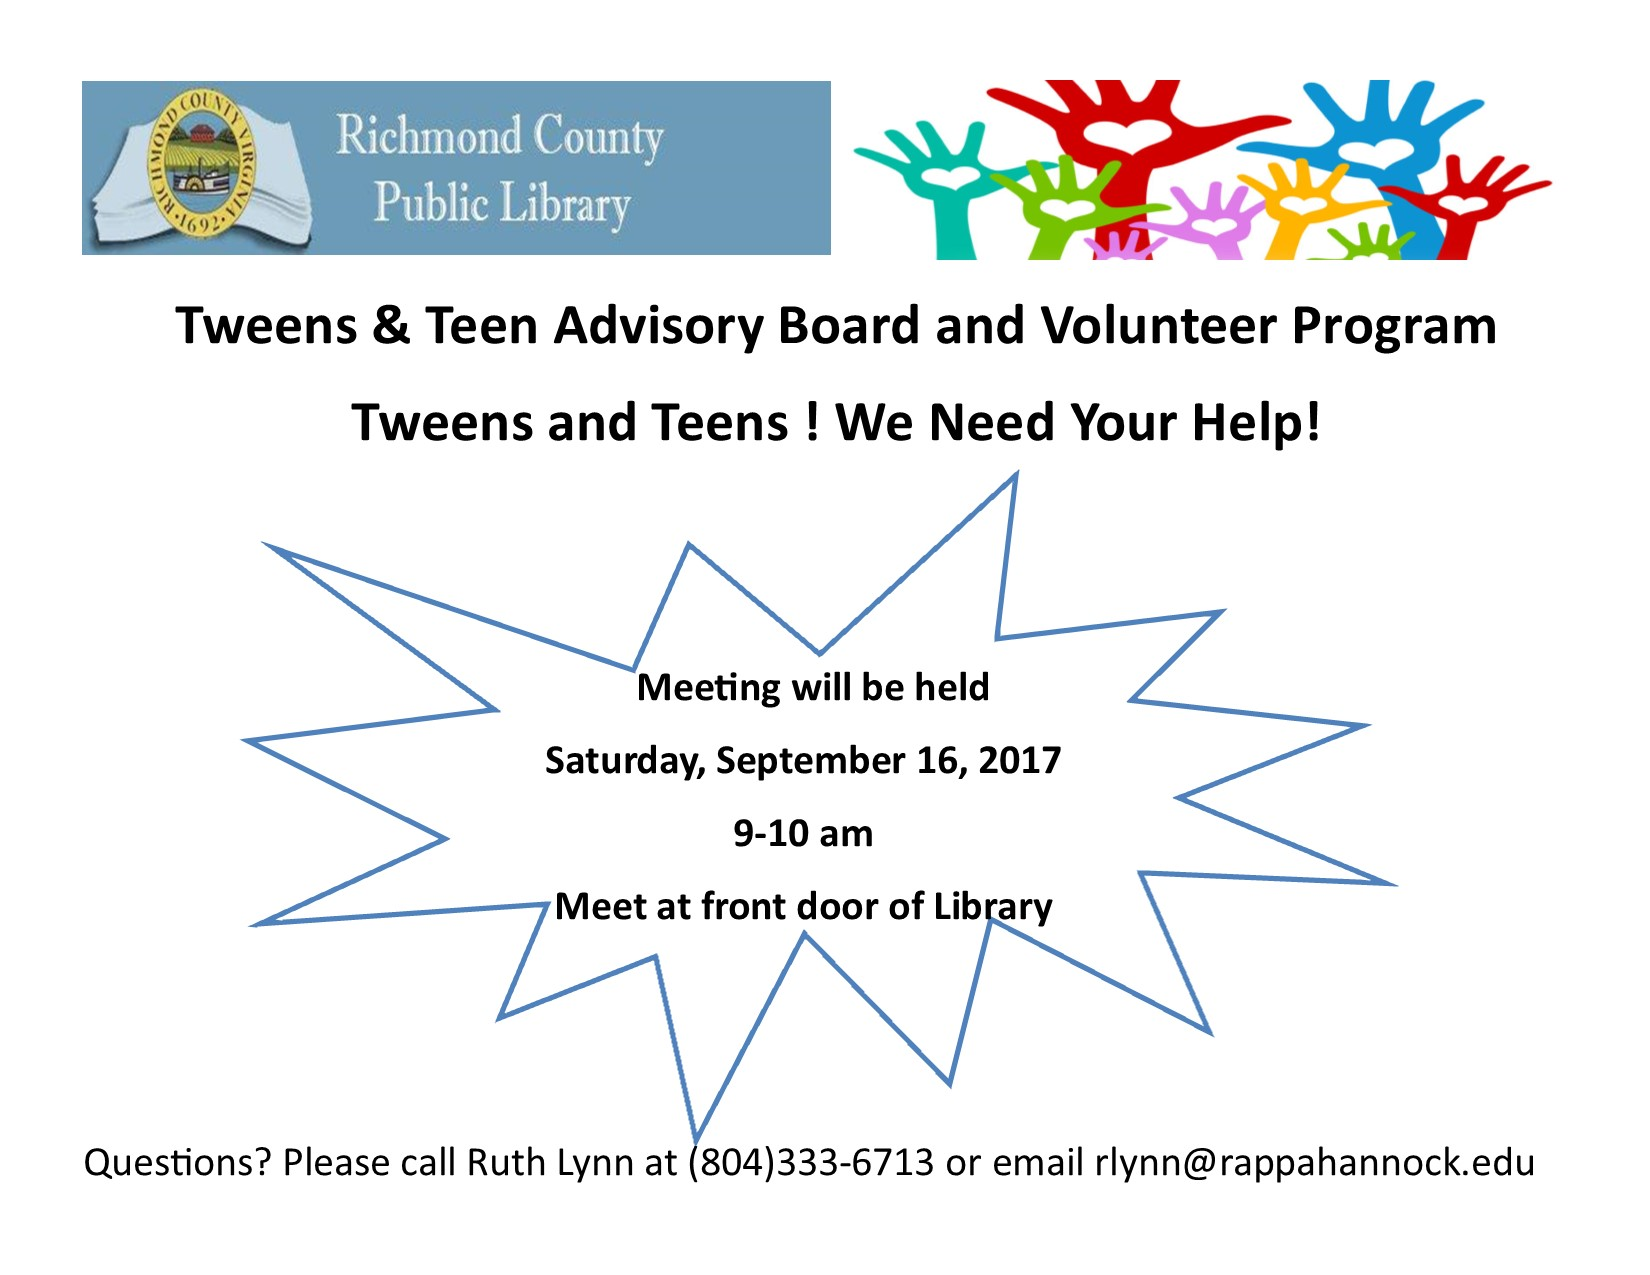 Tween & Teens Advisory Board and Volunteer Program. Tweens and Teens! We need your help! Meeting will be held Saturday, September 16, 2017 Please call Ruth Lynn at 804-333-6713 or email rlynn@rappahannock.edu